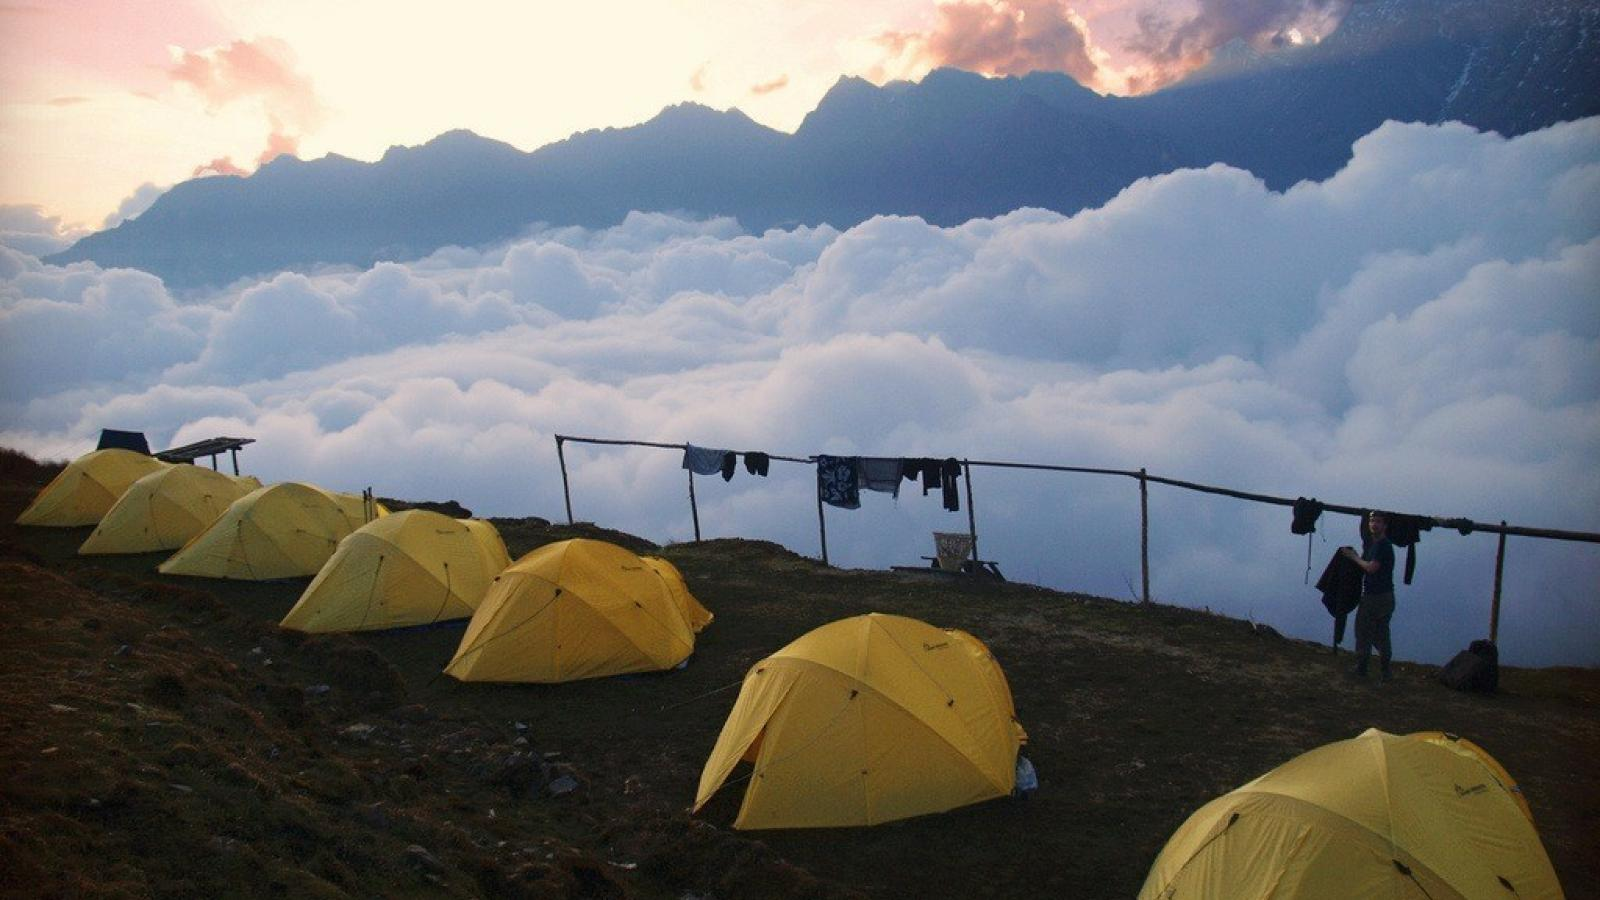 Mountains clouds tents camping wallpaper 58231 1600x900